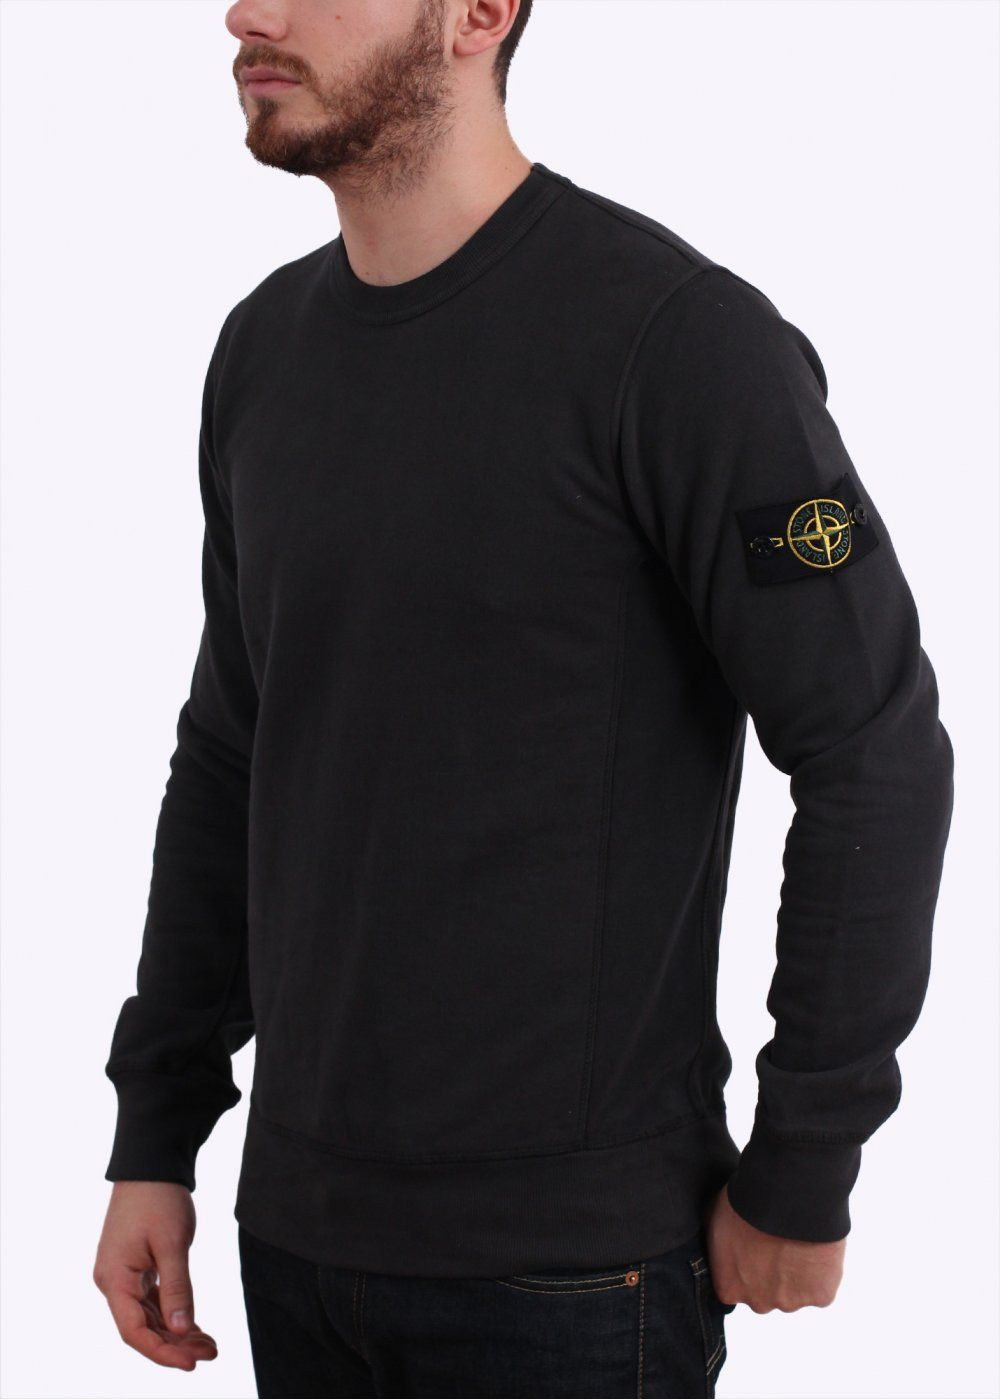 Stone Island Crew Sweater - Dark Grey Stone Island Jumper 1514be0ea43